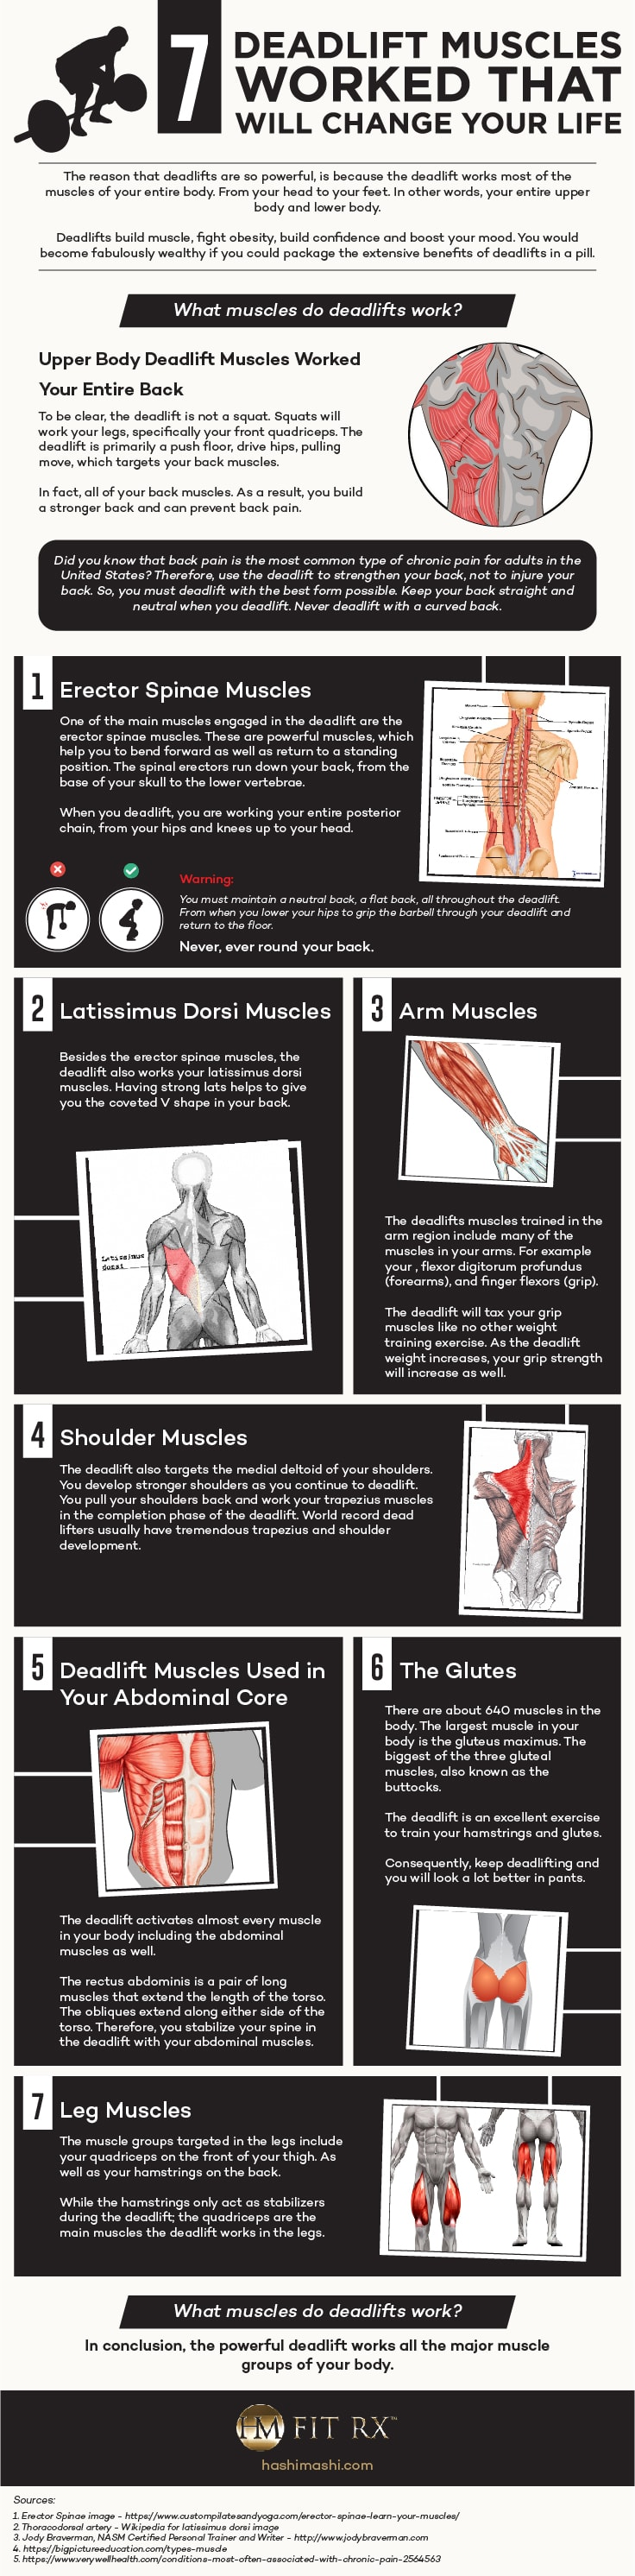 How to Take Control of Your Body with Deadlifts - Infographic